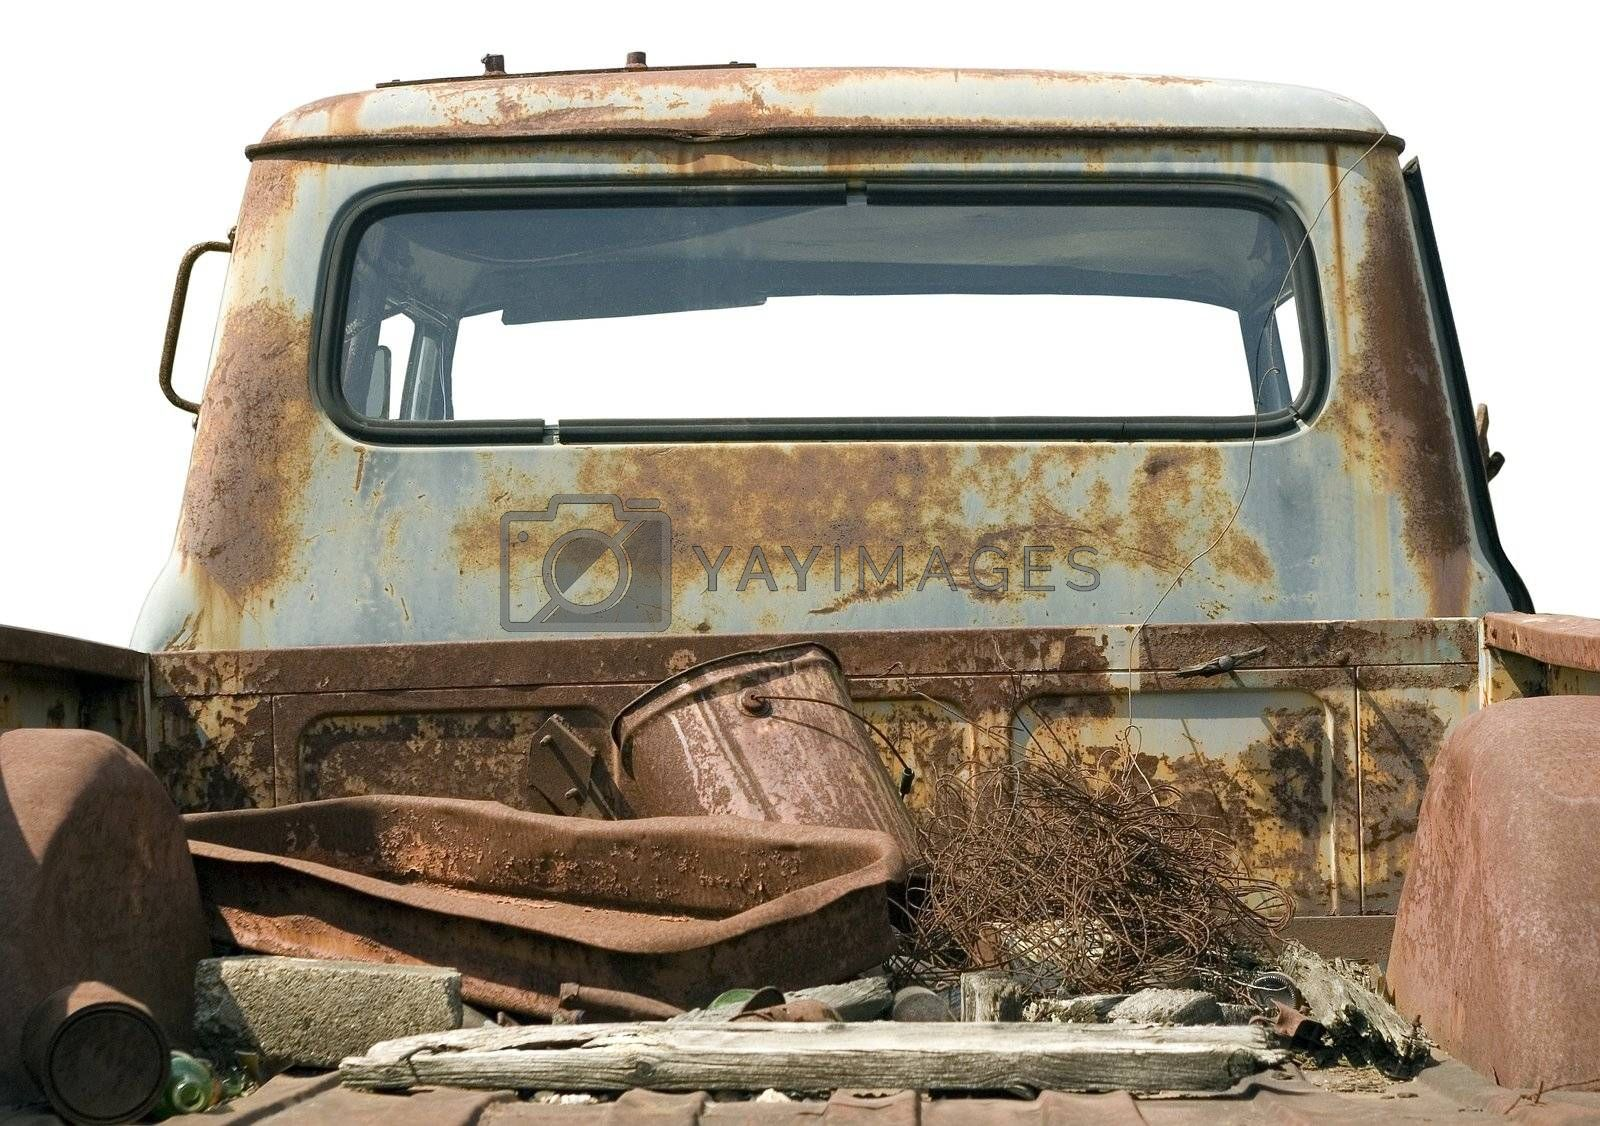 Rusted vintage truck truck bed filled with junk, isolated on a white background.